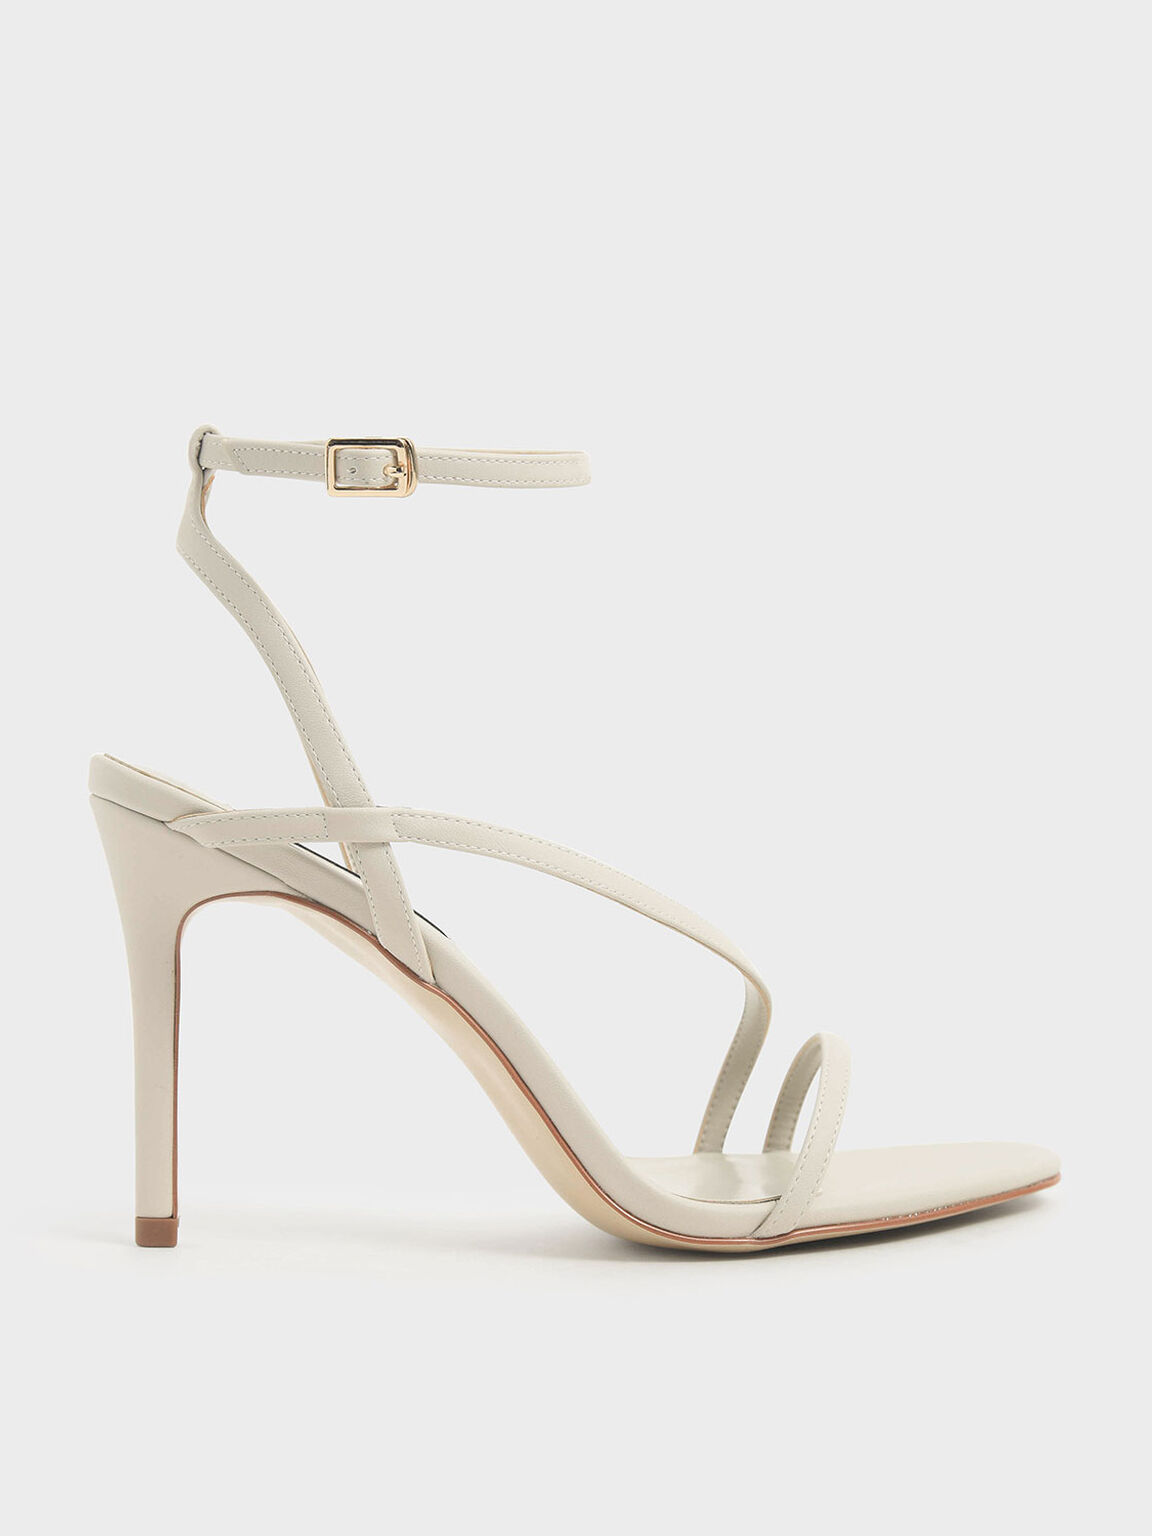 Strappy Stiletto Heel Sandals, Chalk, hi-res